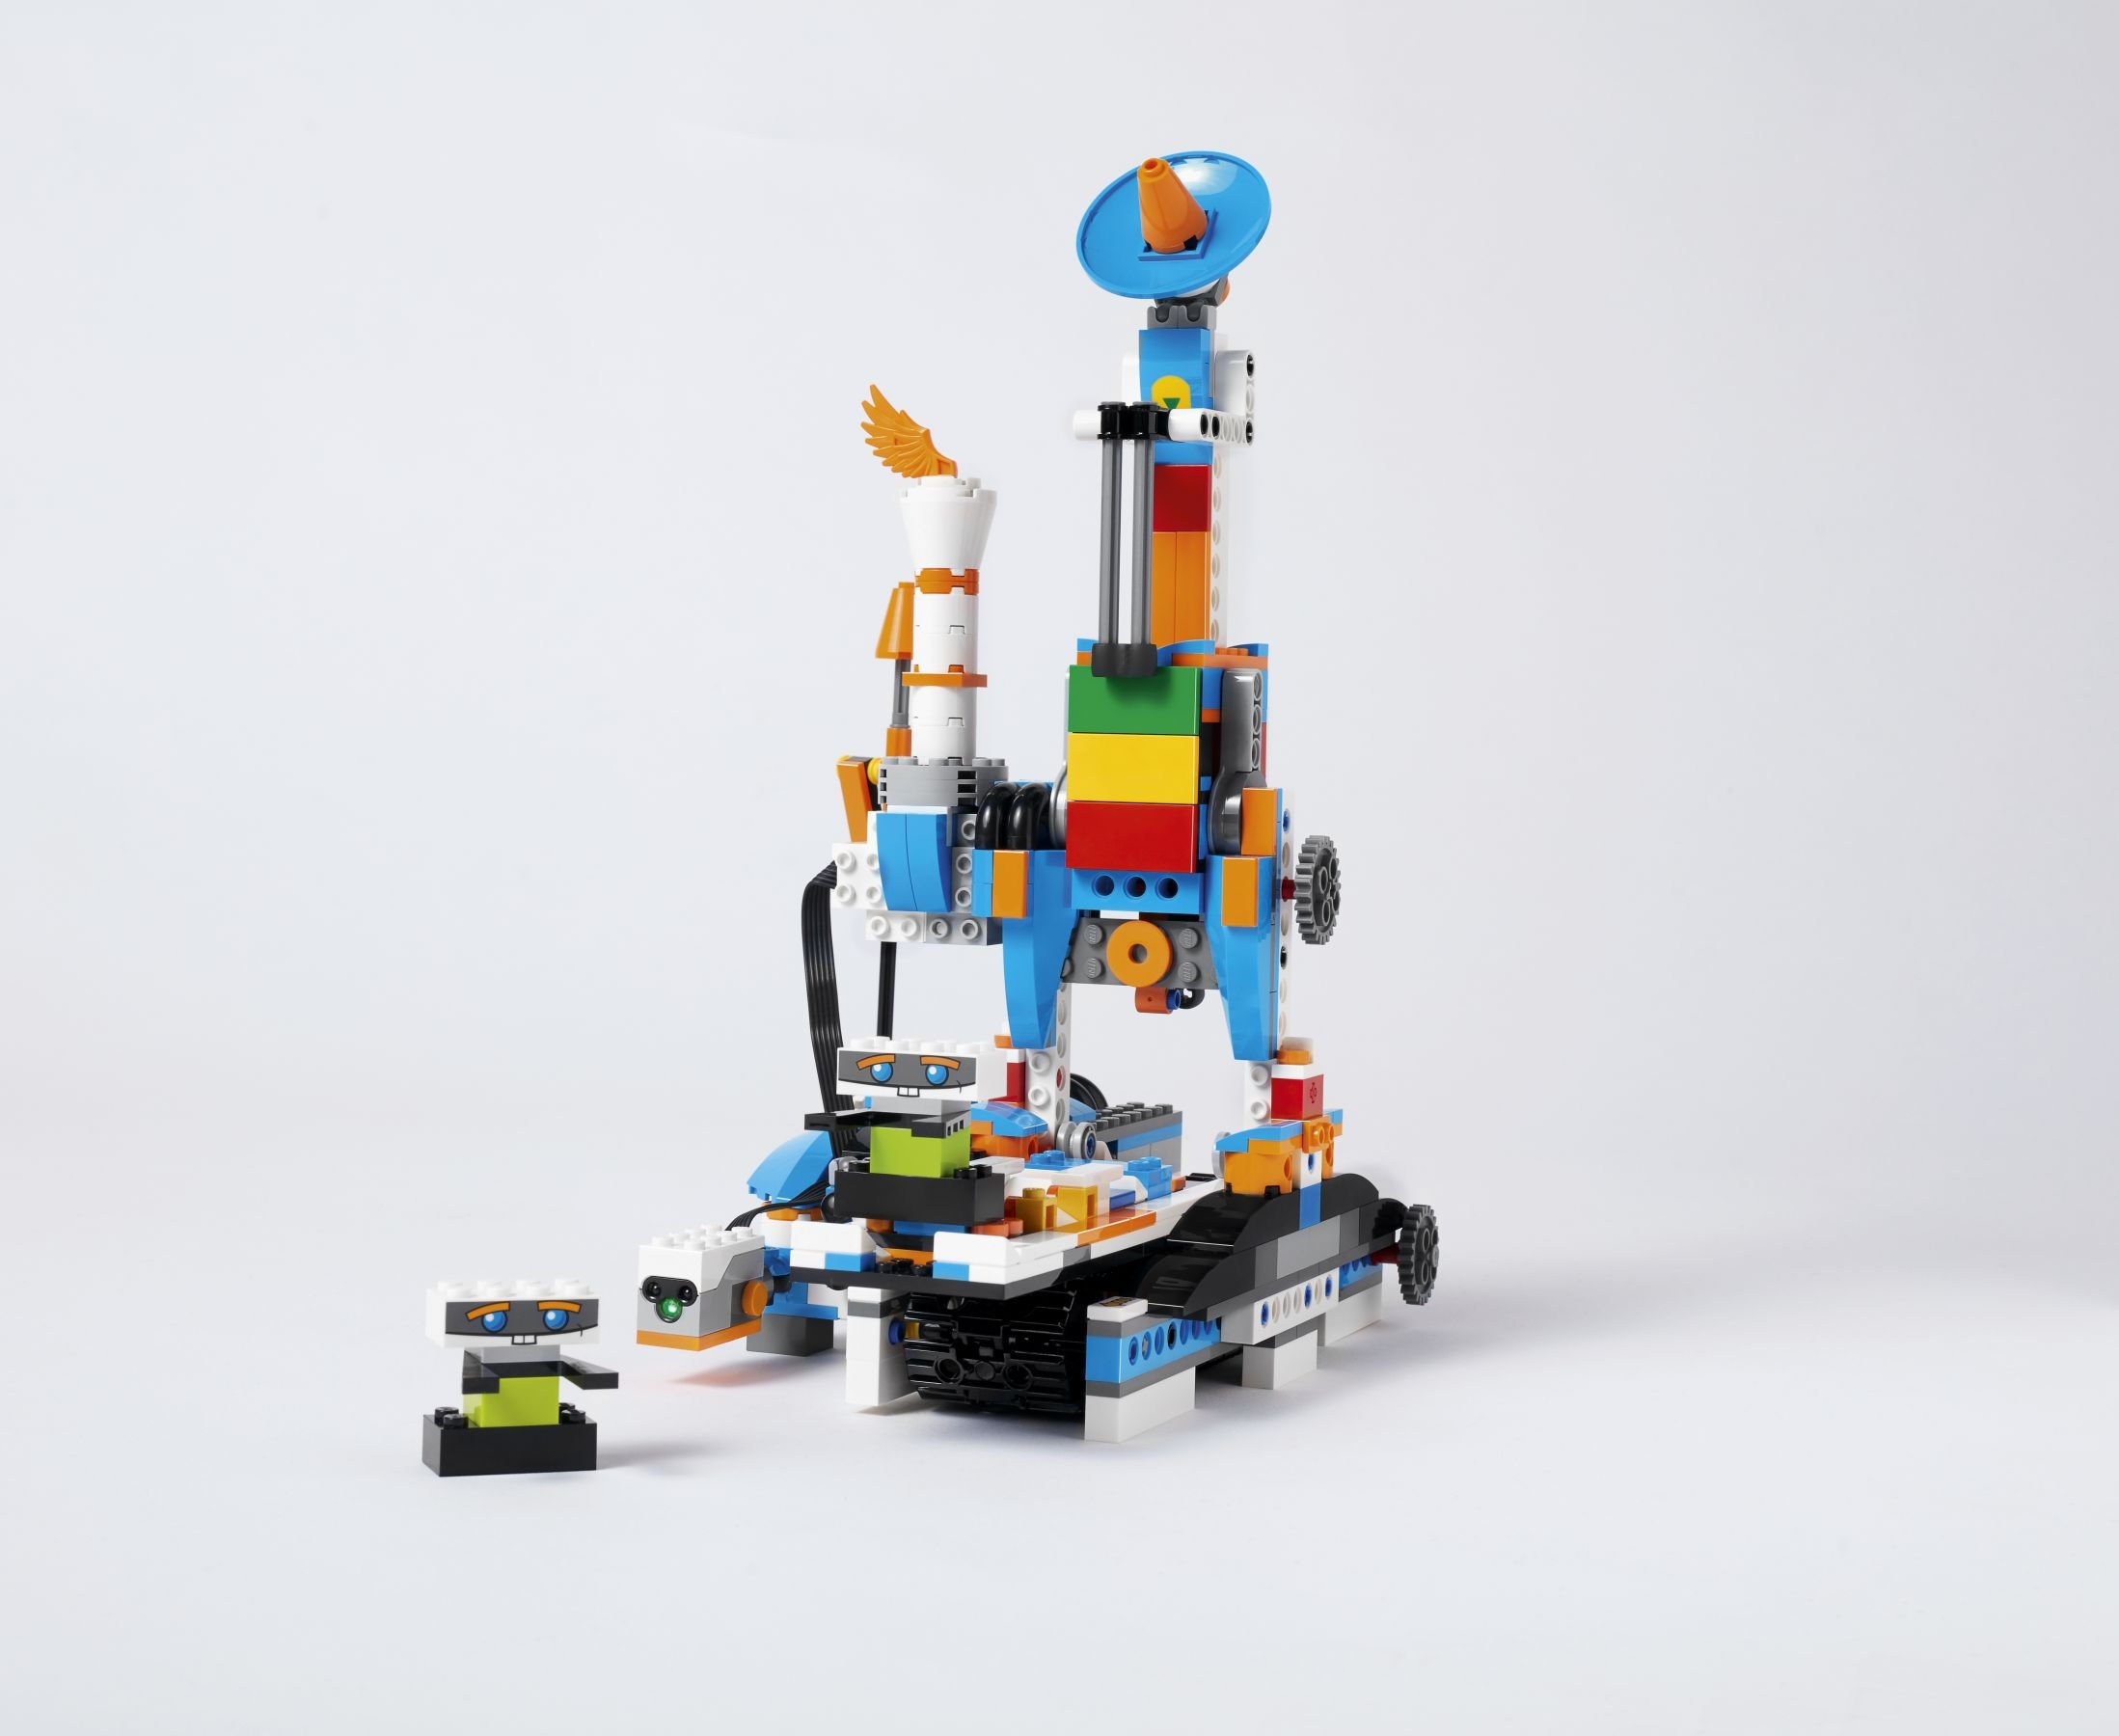 LEGO BOOST 17101 Creative Toolbox LEGO_BOOST_WHITE_FACTORY_V017.jpg